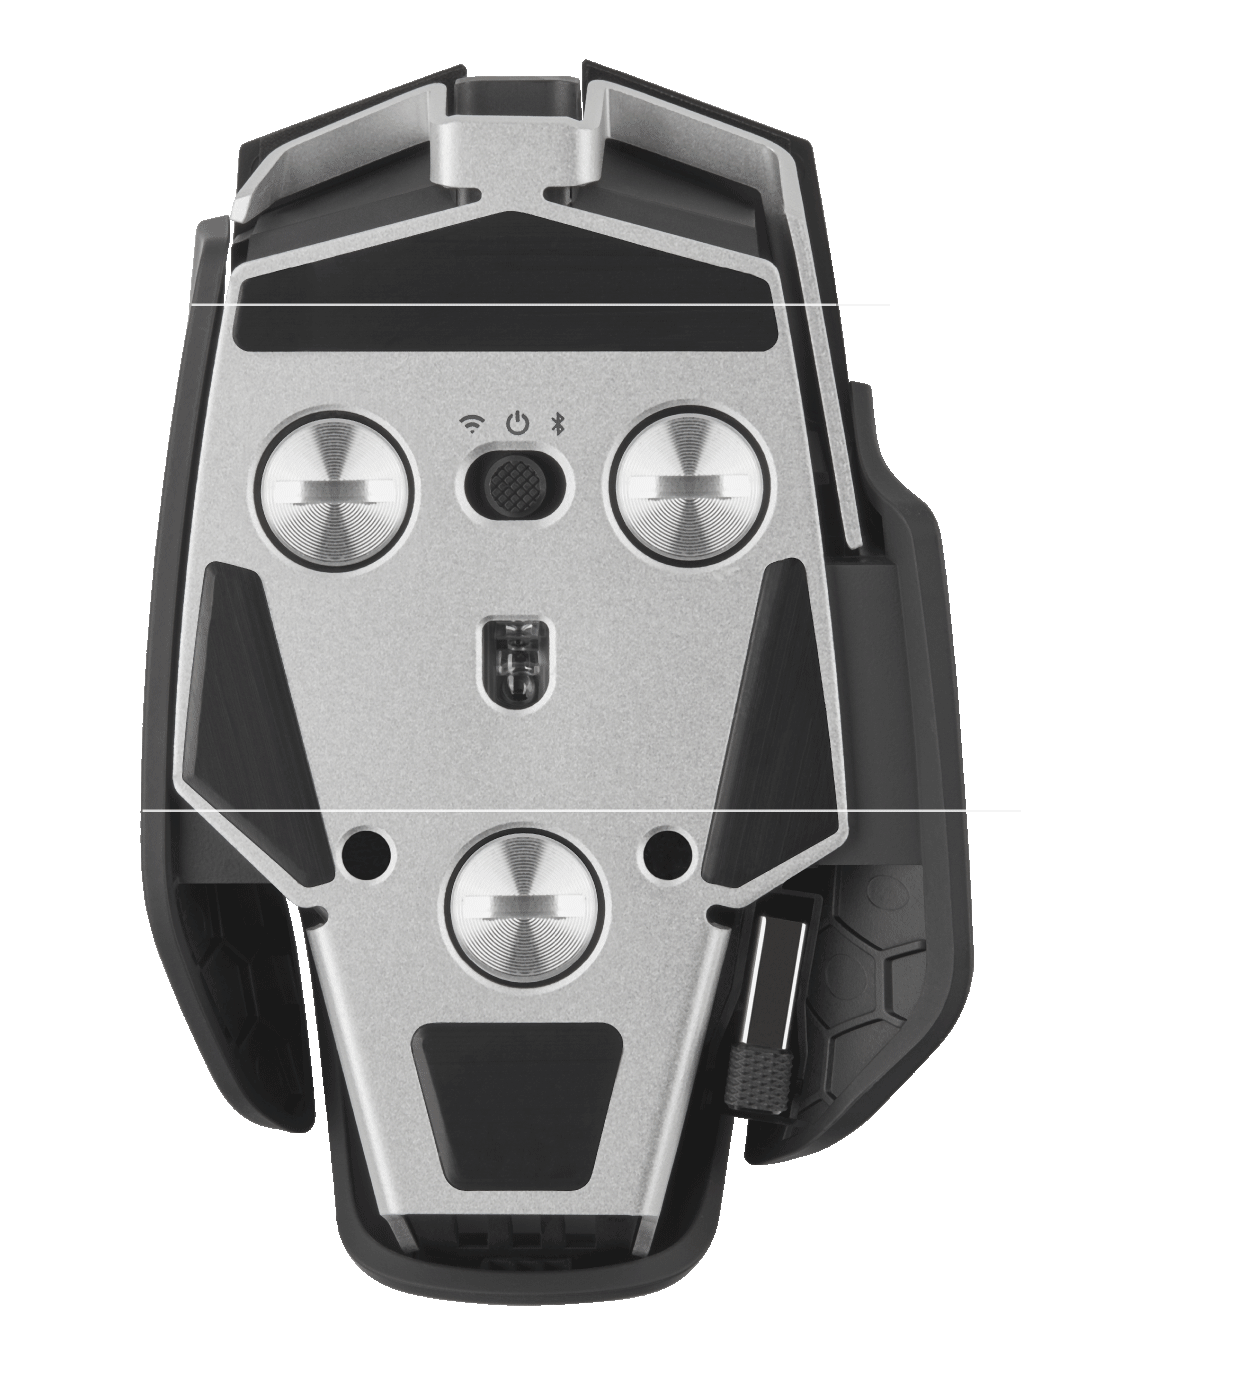 M65 Wireless Mouse Dimensions